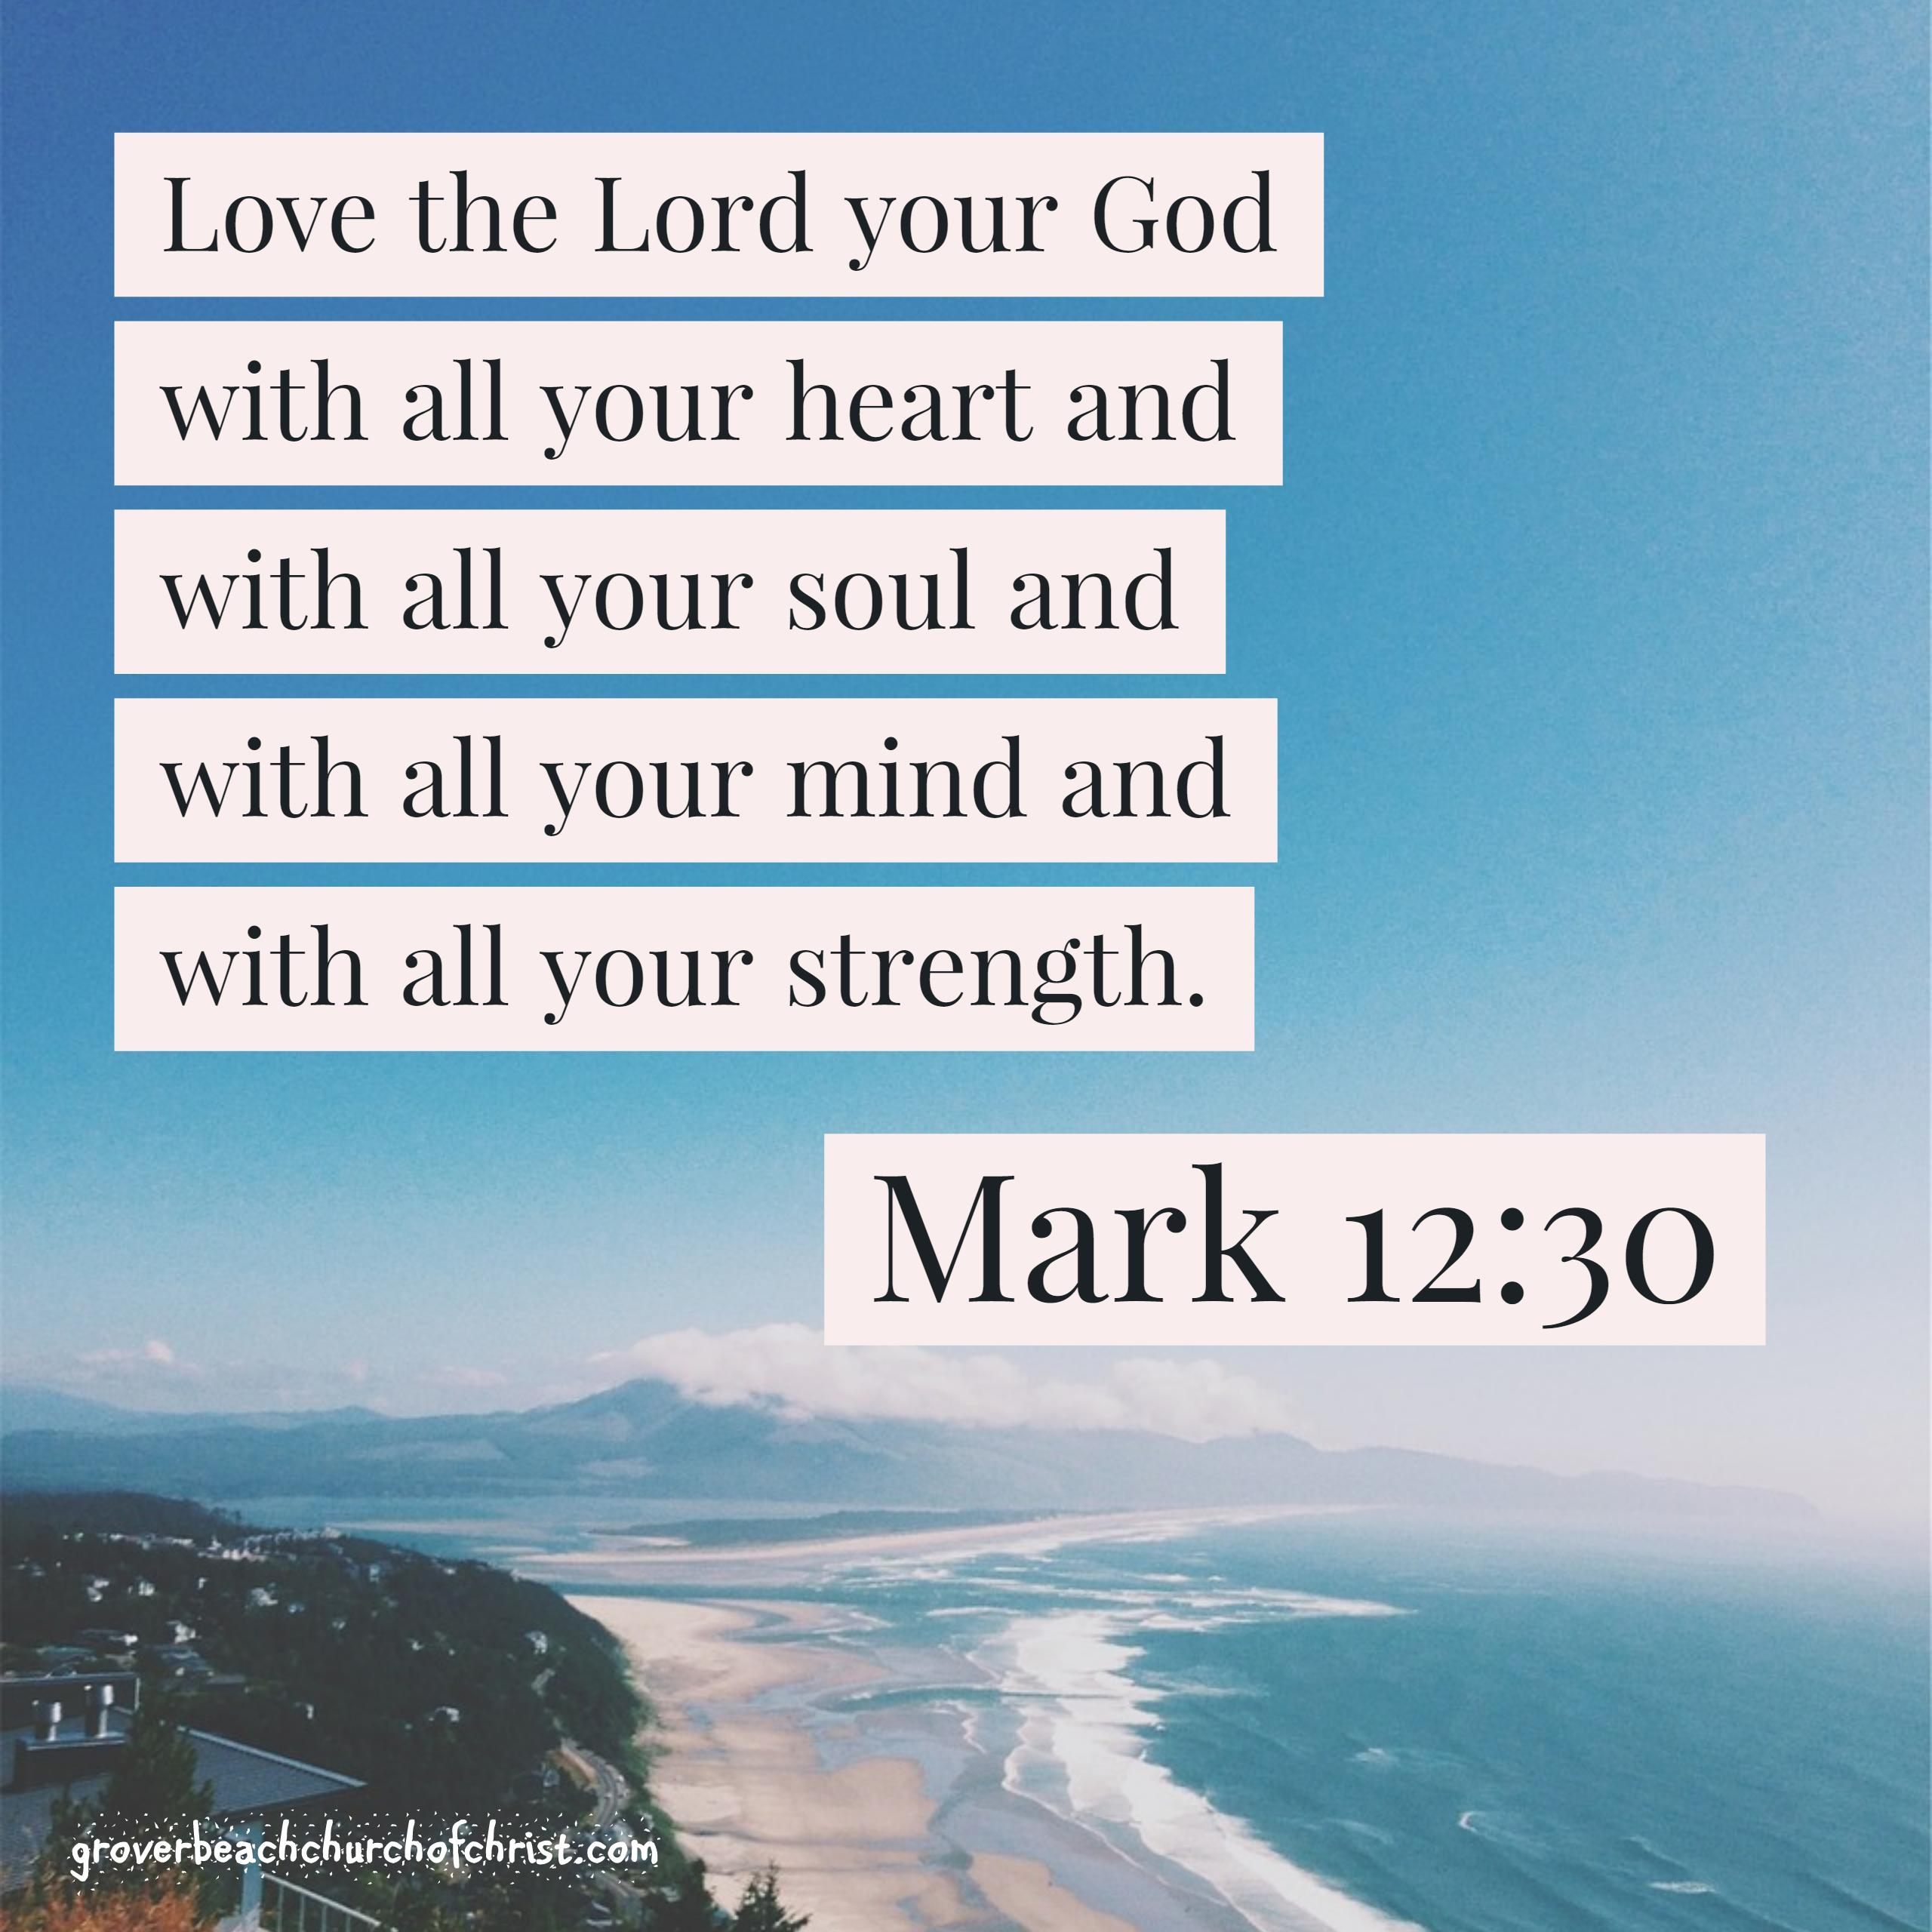 Mark 12:30 Love the Lord with all your heart